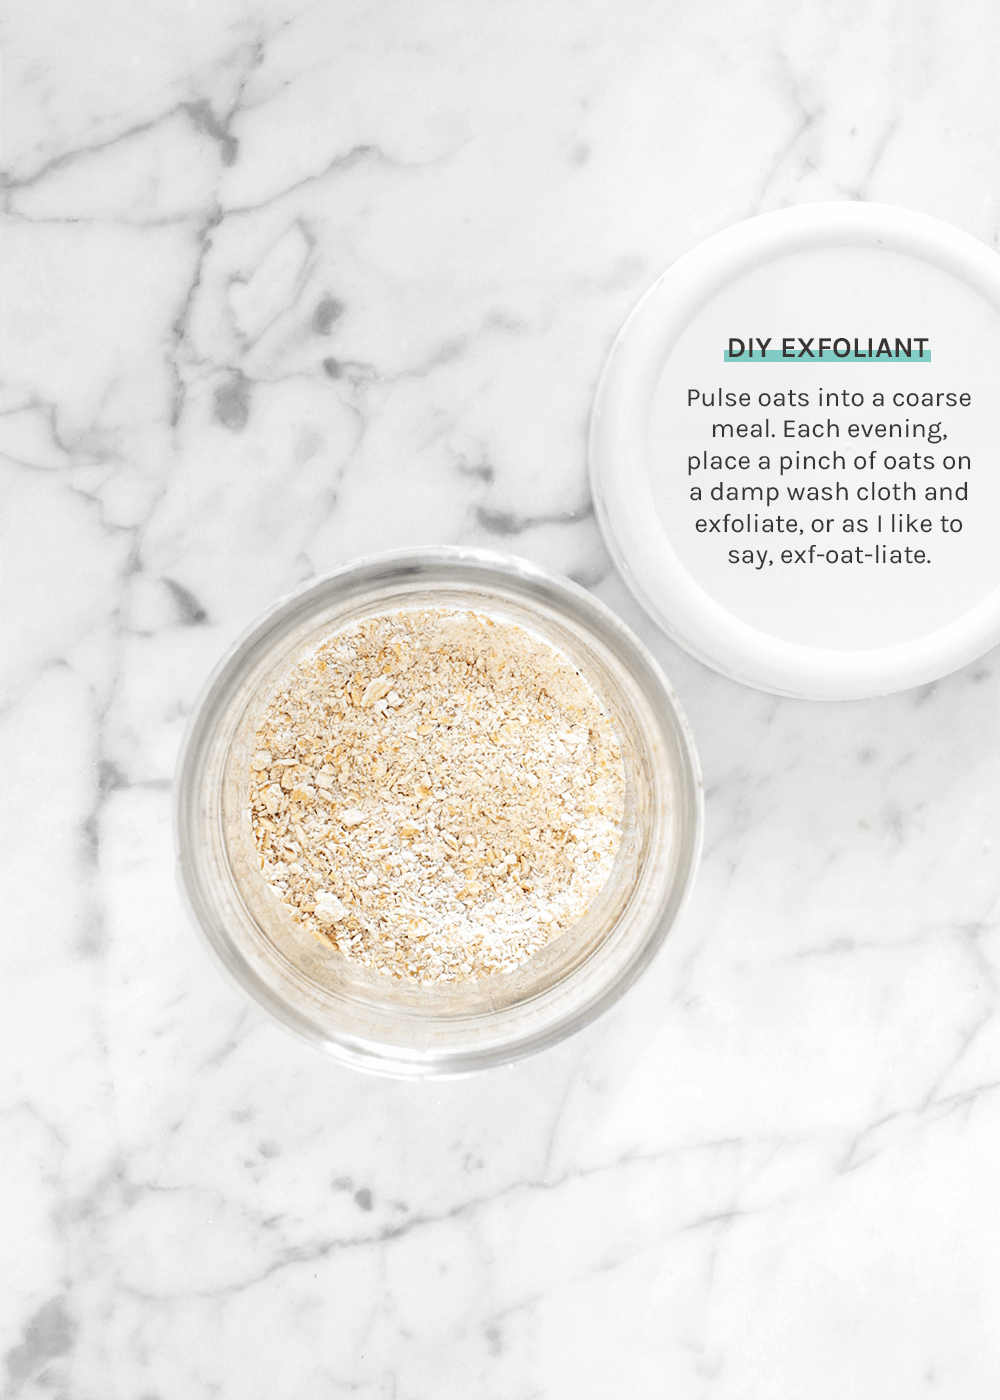 DIY Exfoliant made from oats from the faux martha